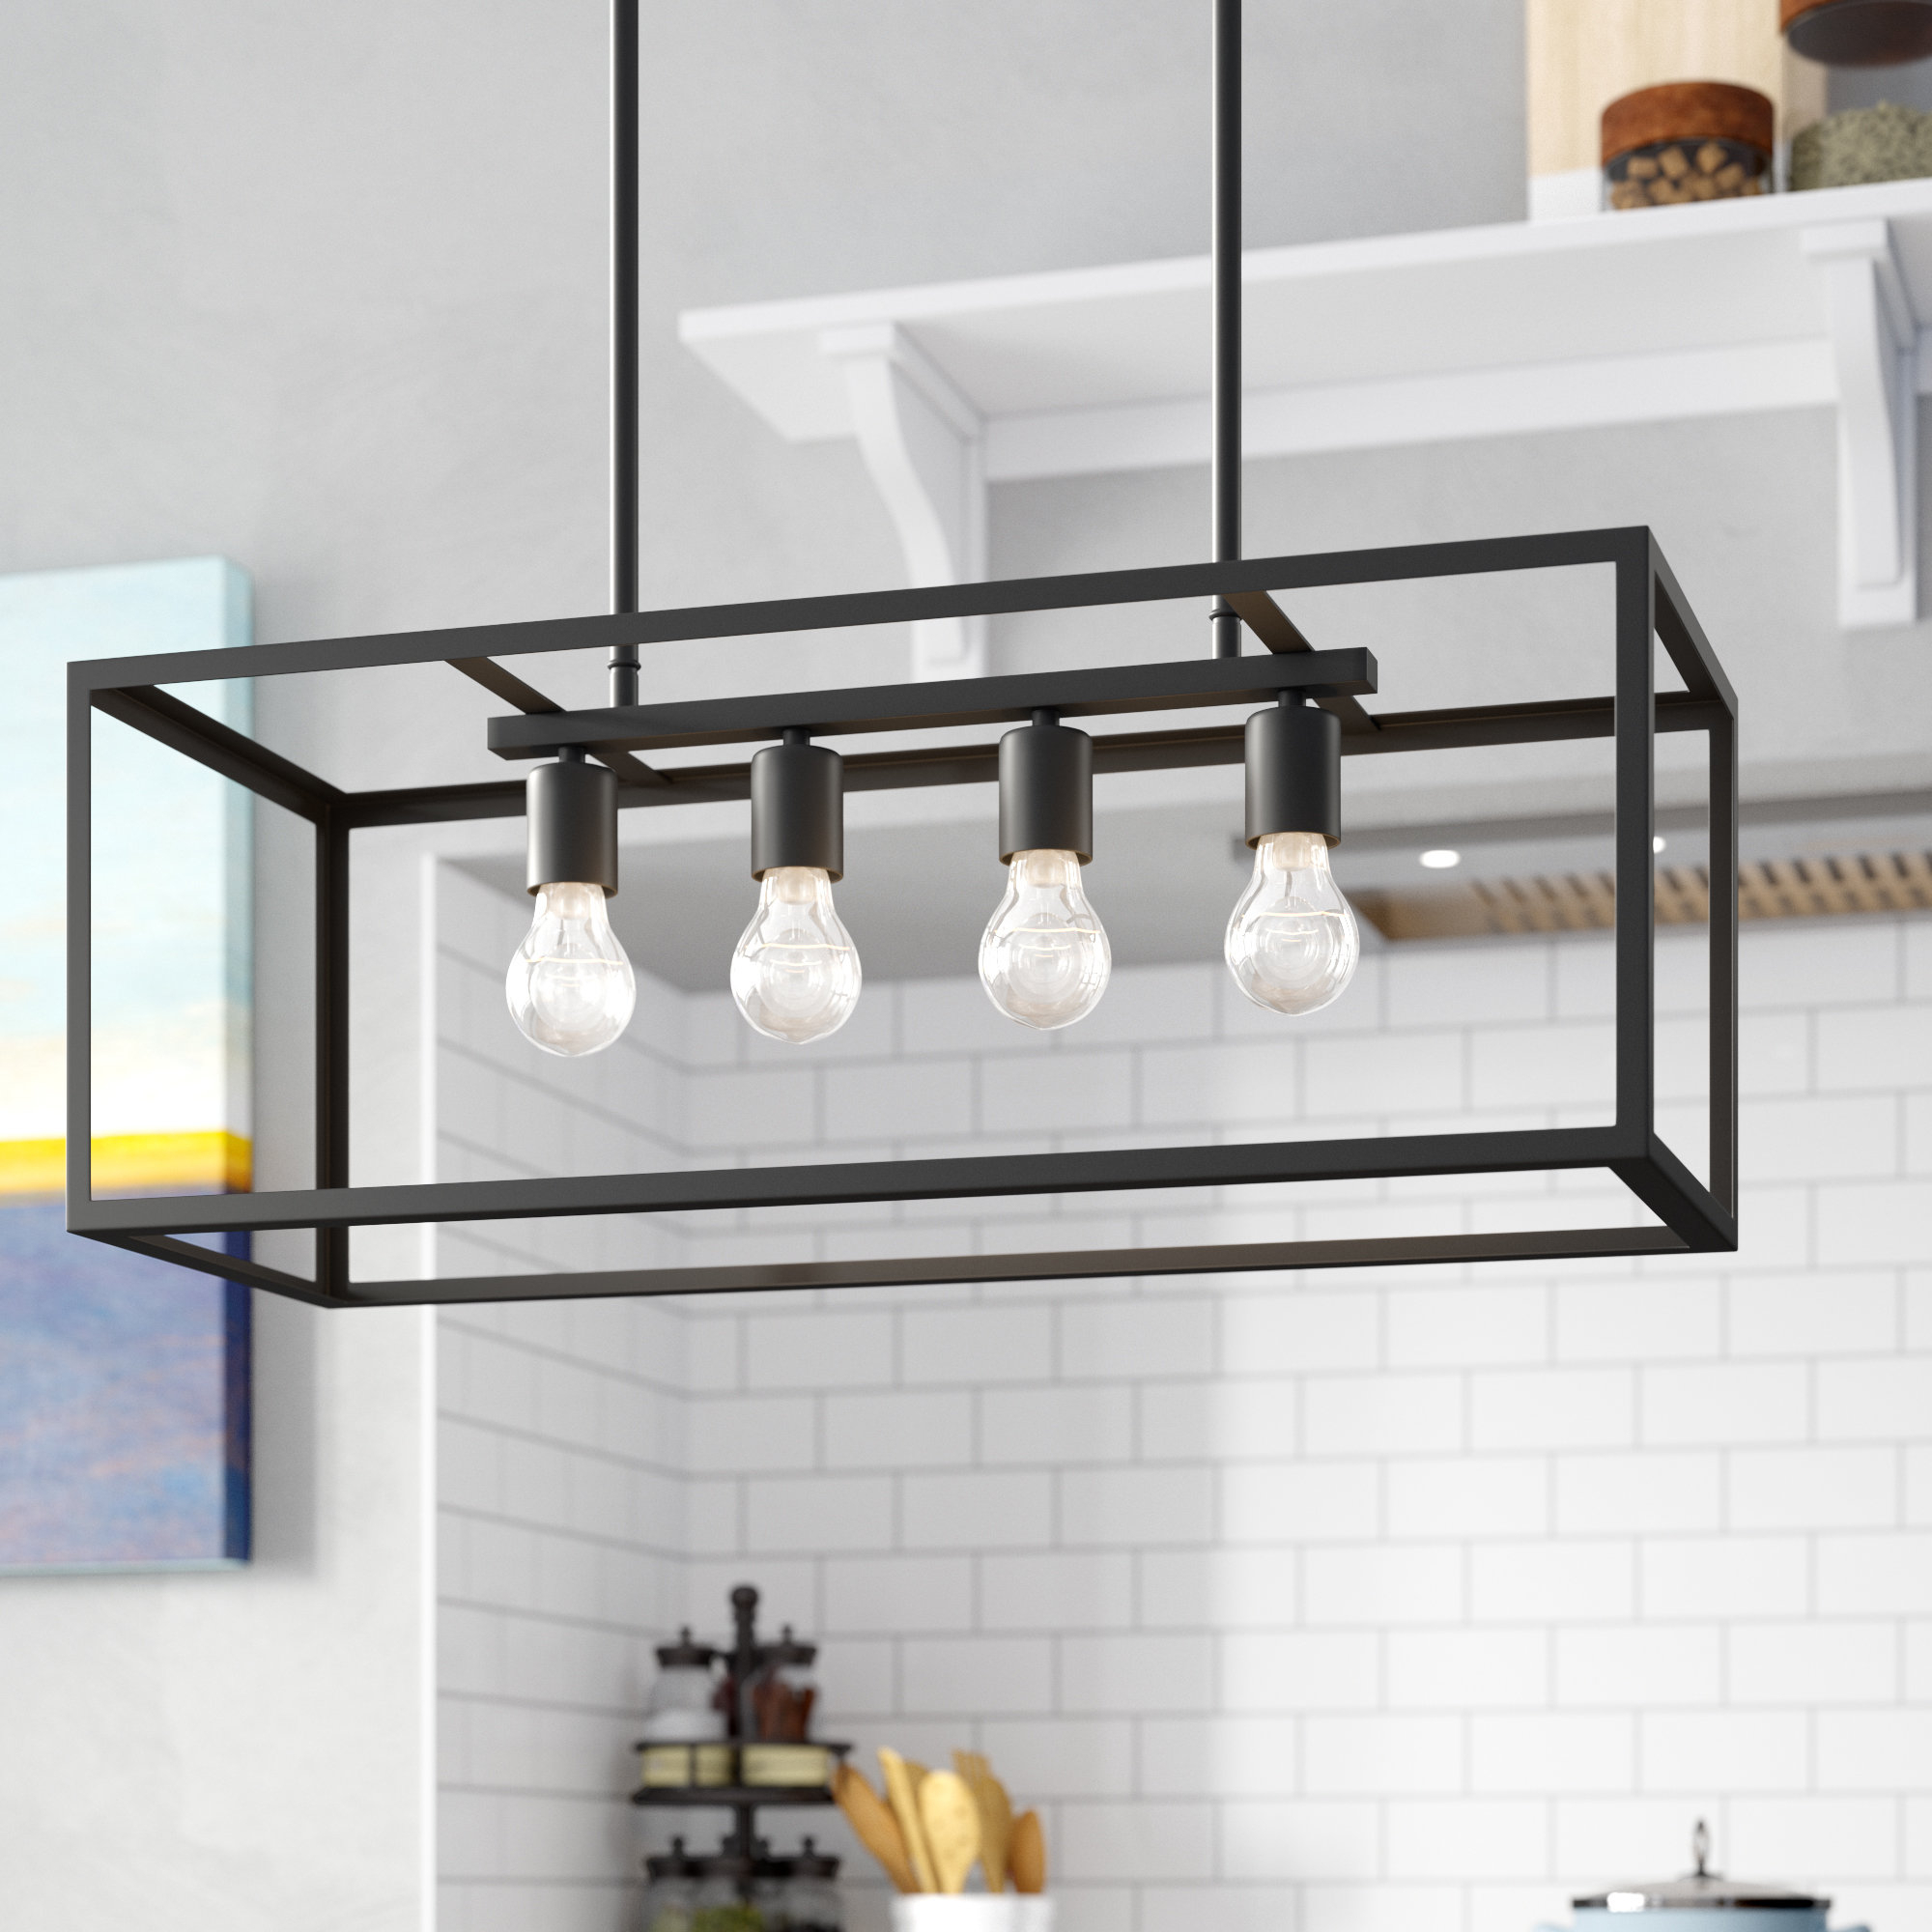 Ratner 4 Light Kitchen Island Linear Pendant For Most Current Jefferson 4 Light Kitchen Island Linear Pendants (View 19 of 25)